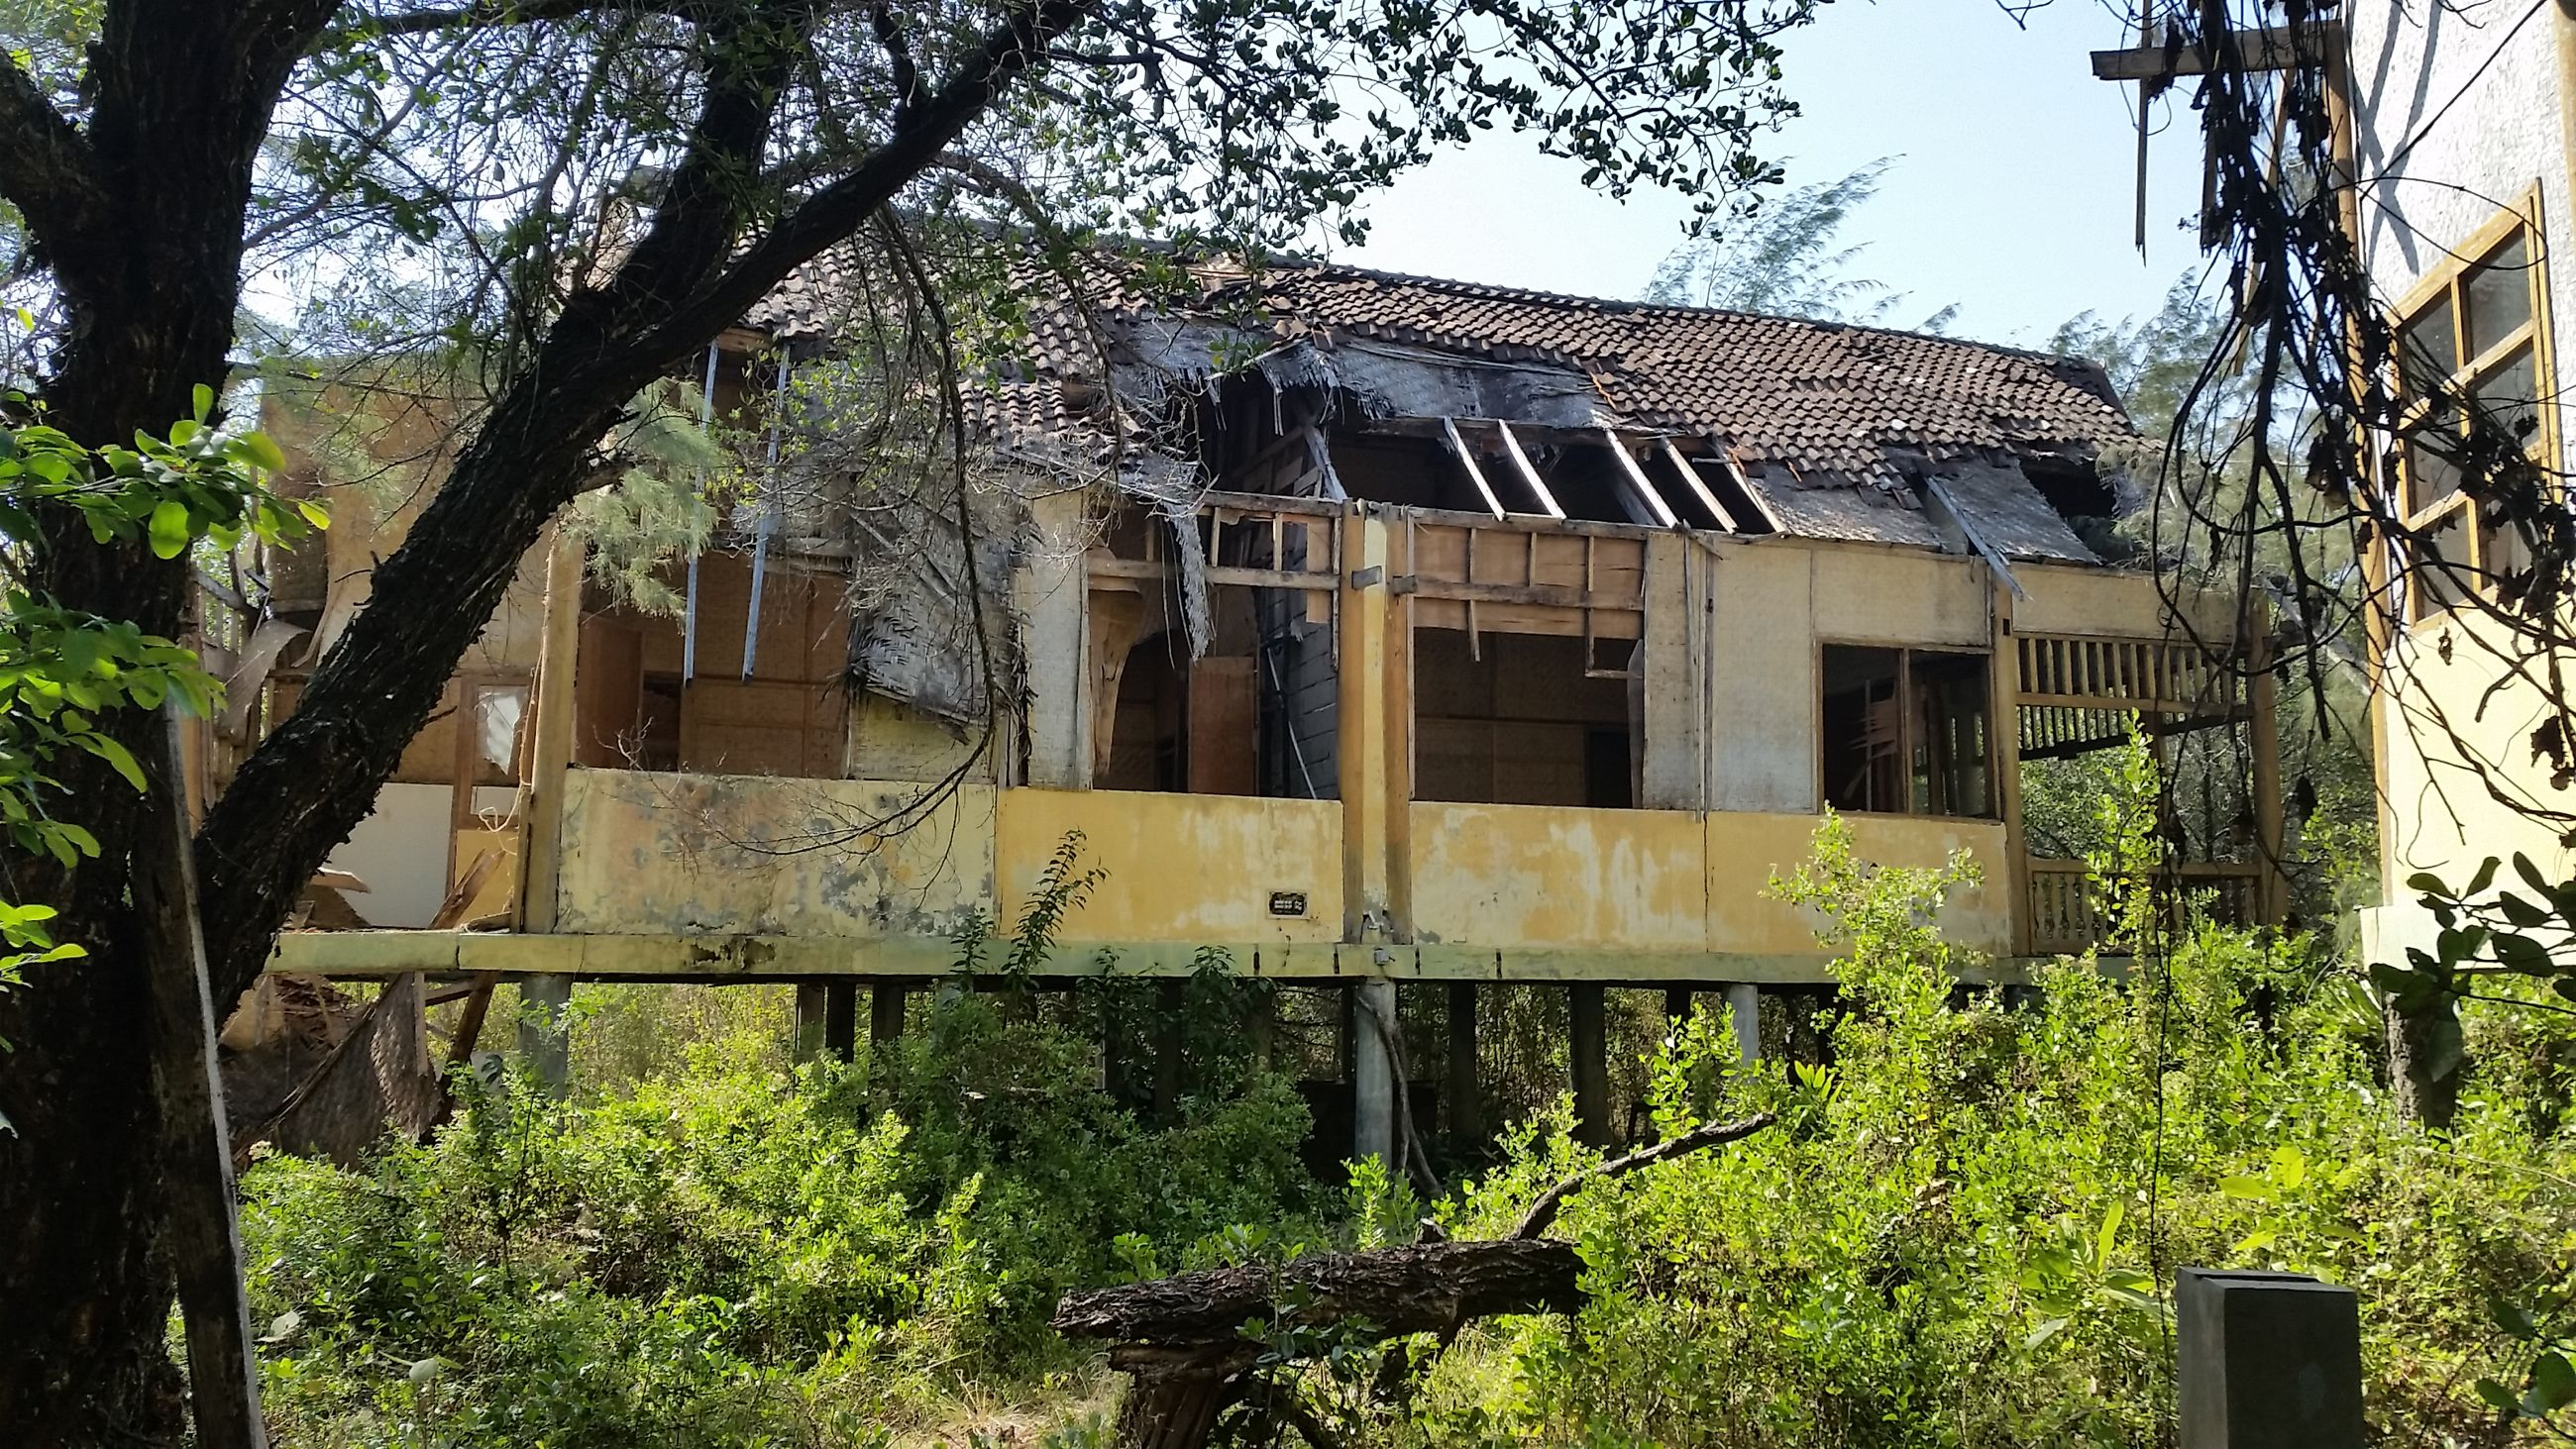 architecture, built structure, building exterior, tree, house, plant, growth, residential structure, abandoned, low angle view, old, residential building, sky, day, green color, no people, outdoors, grass, damaged, building